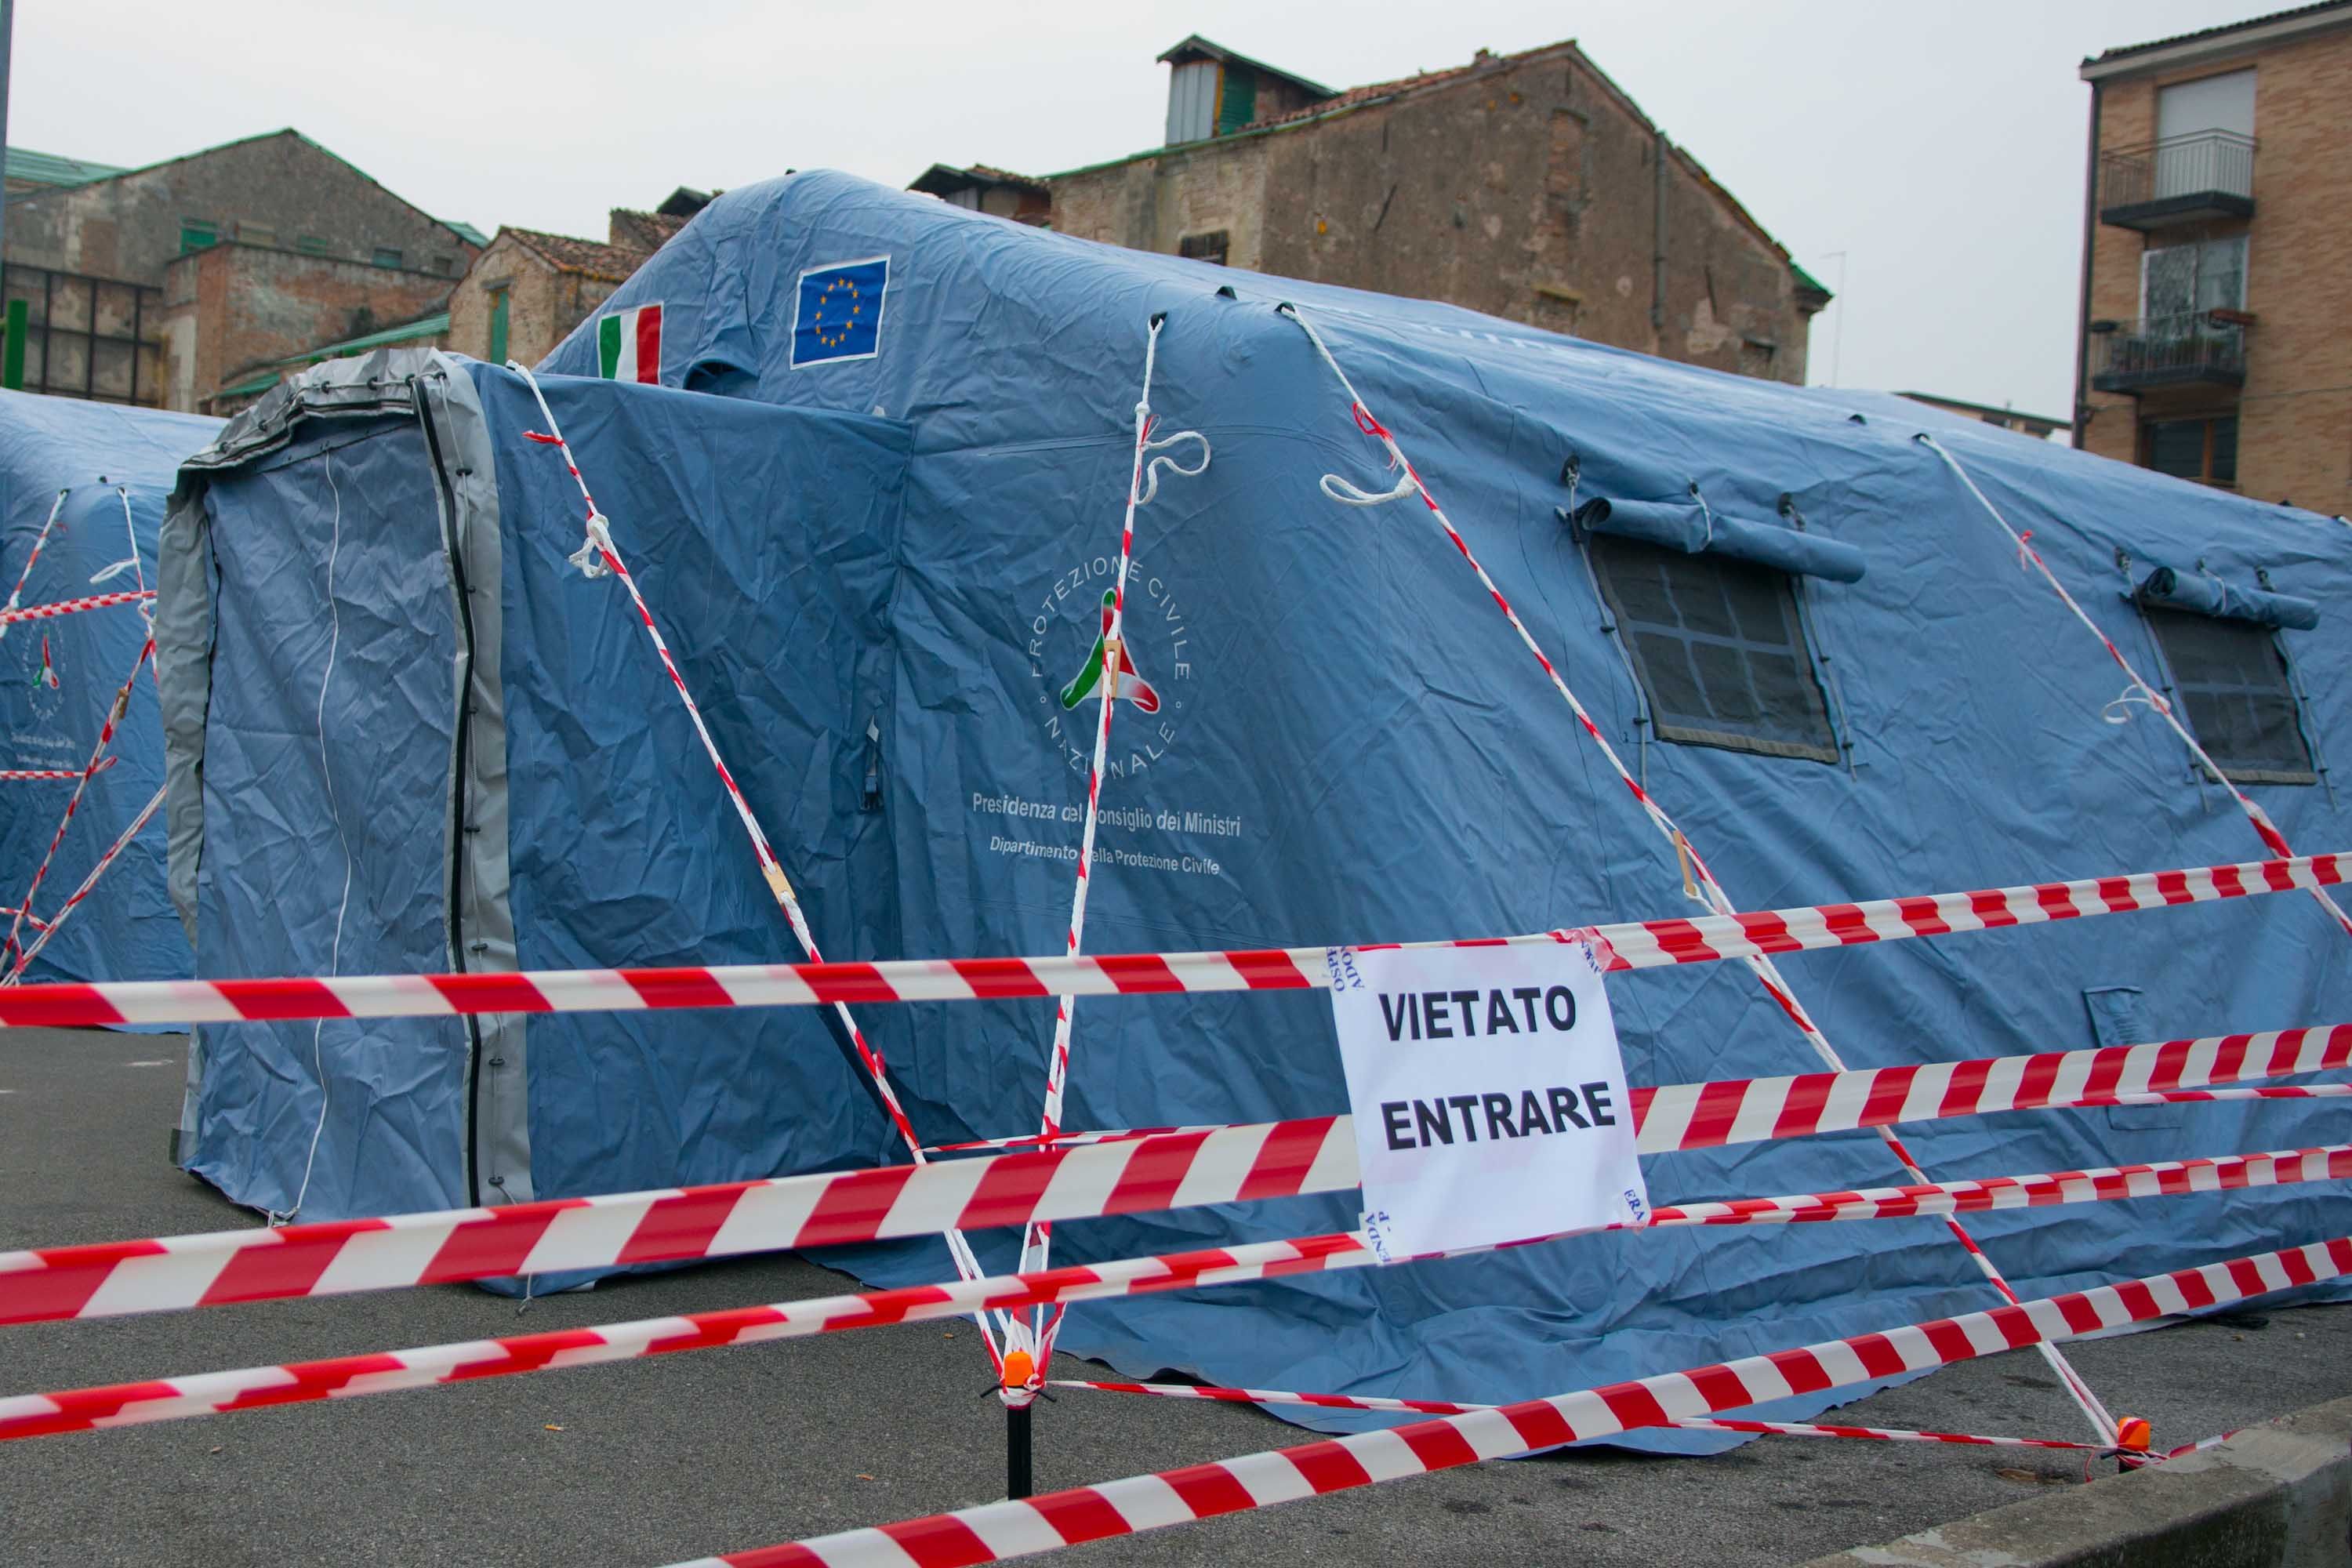 A view of tents prepared for coronavirus patients at a hospital in Padova, Italy, on Monday.